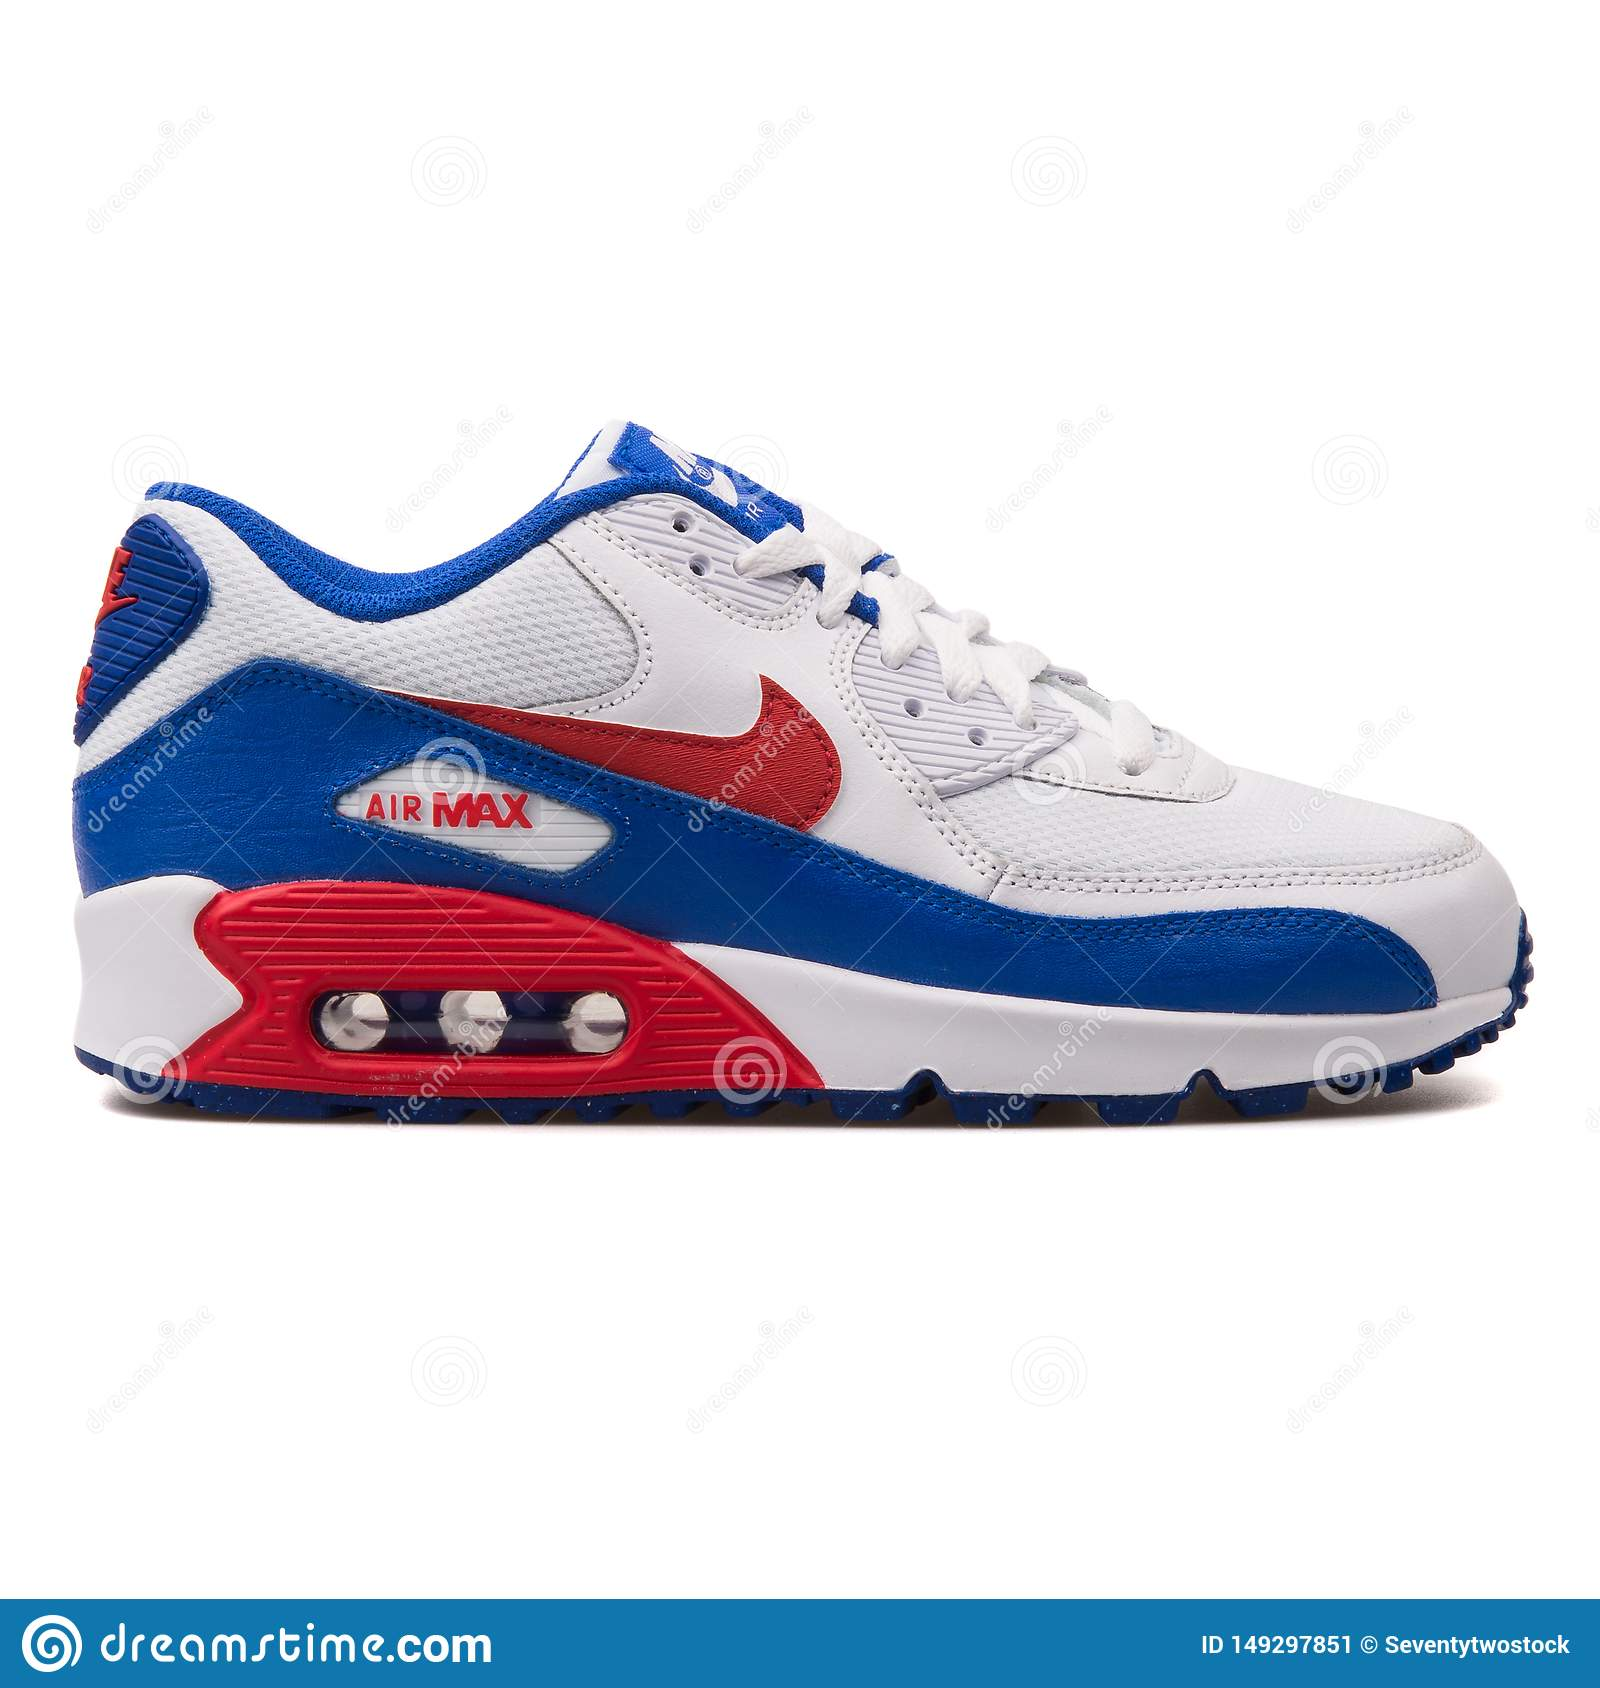 especificación Fontanero Cuando  Nike Air Max 90 Mesh White, Bue And Red Sneaker Editorial Photo - Image of  blue, sneakers: 149297851